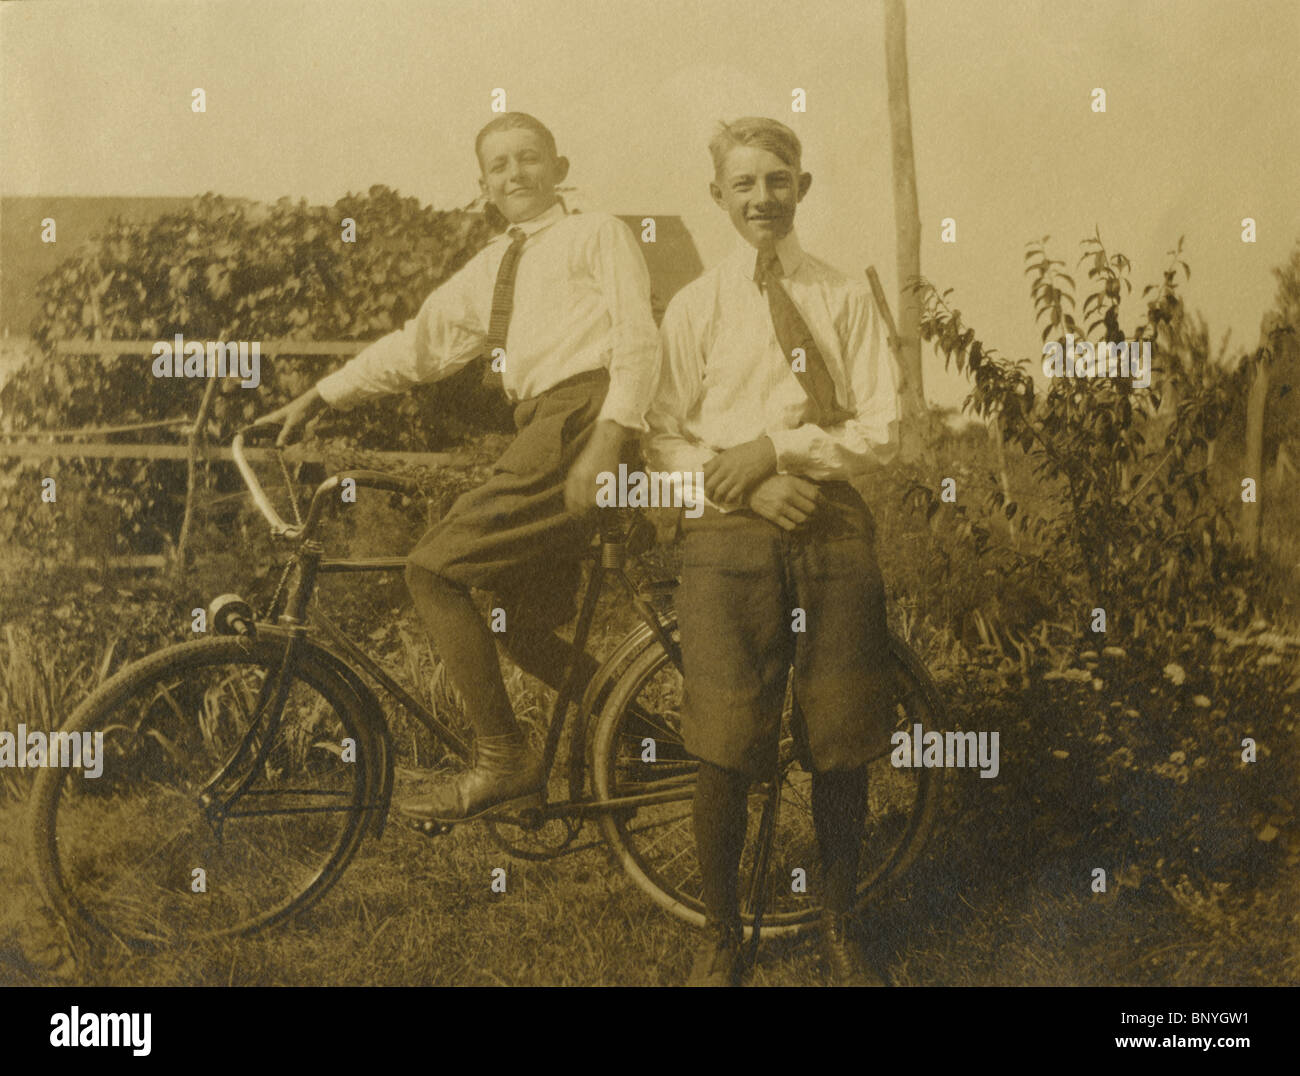 c1910 photograph of two boys riding an antique bicycle. - Stock Image